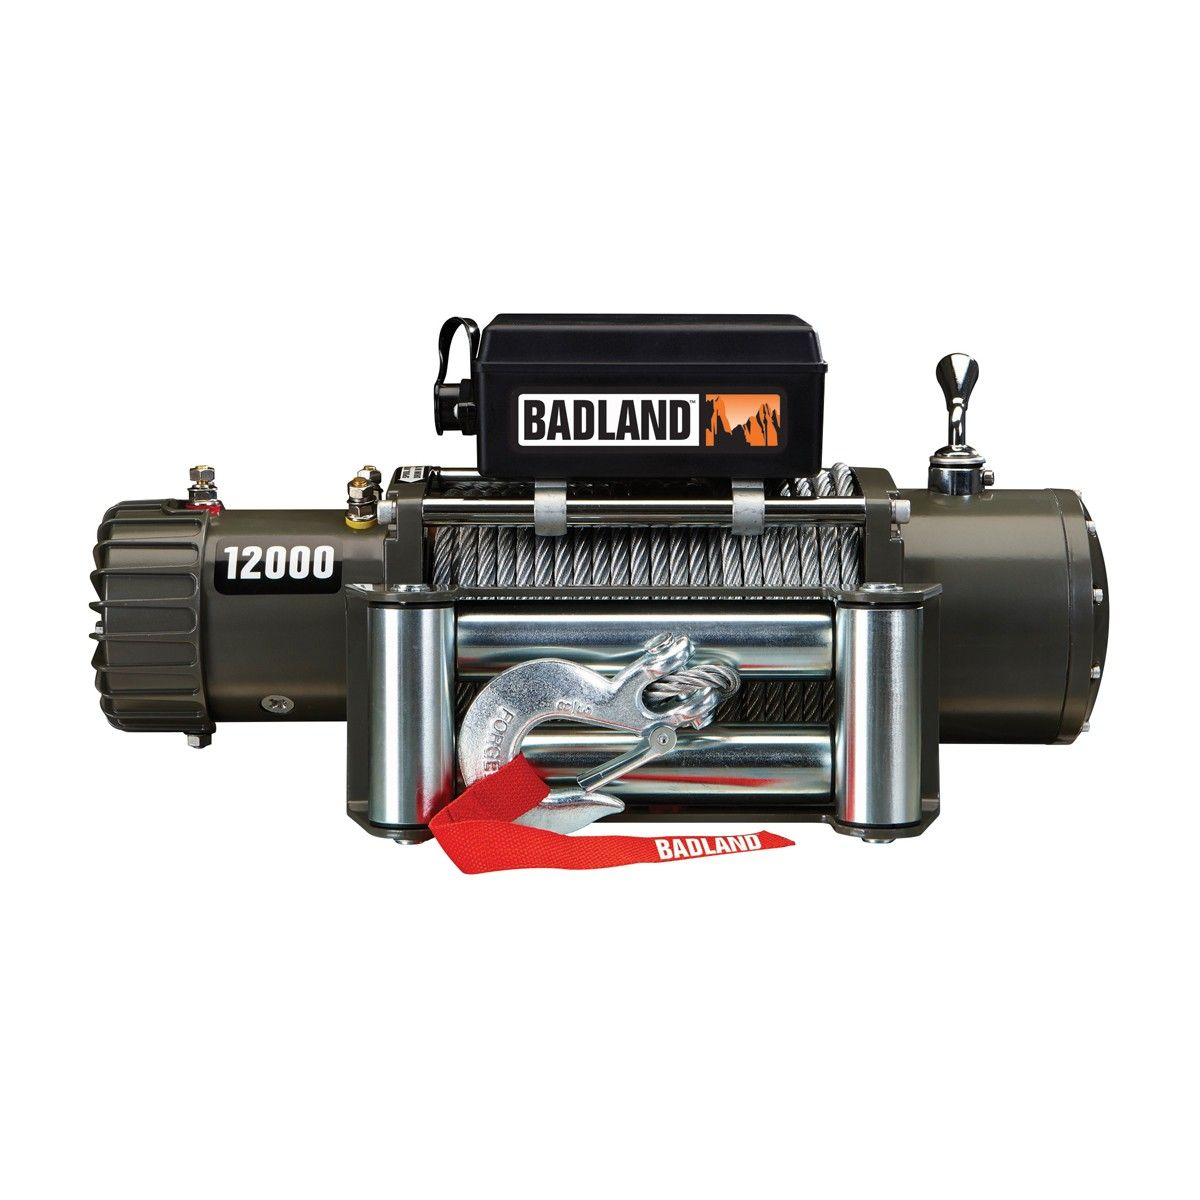 hight resolution of 12000 lb off road vehicle electric winch with automatic load holding brake from harbor freight note there is a coupon that makes this item 299 in stores